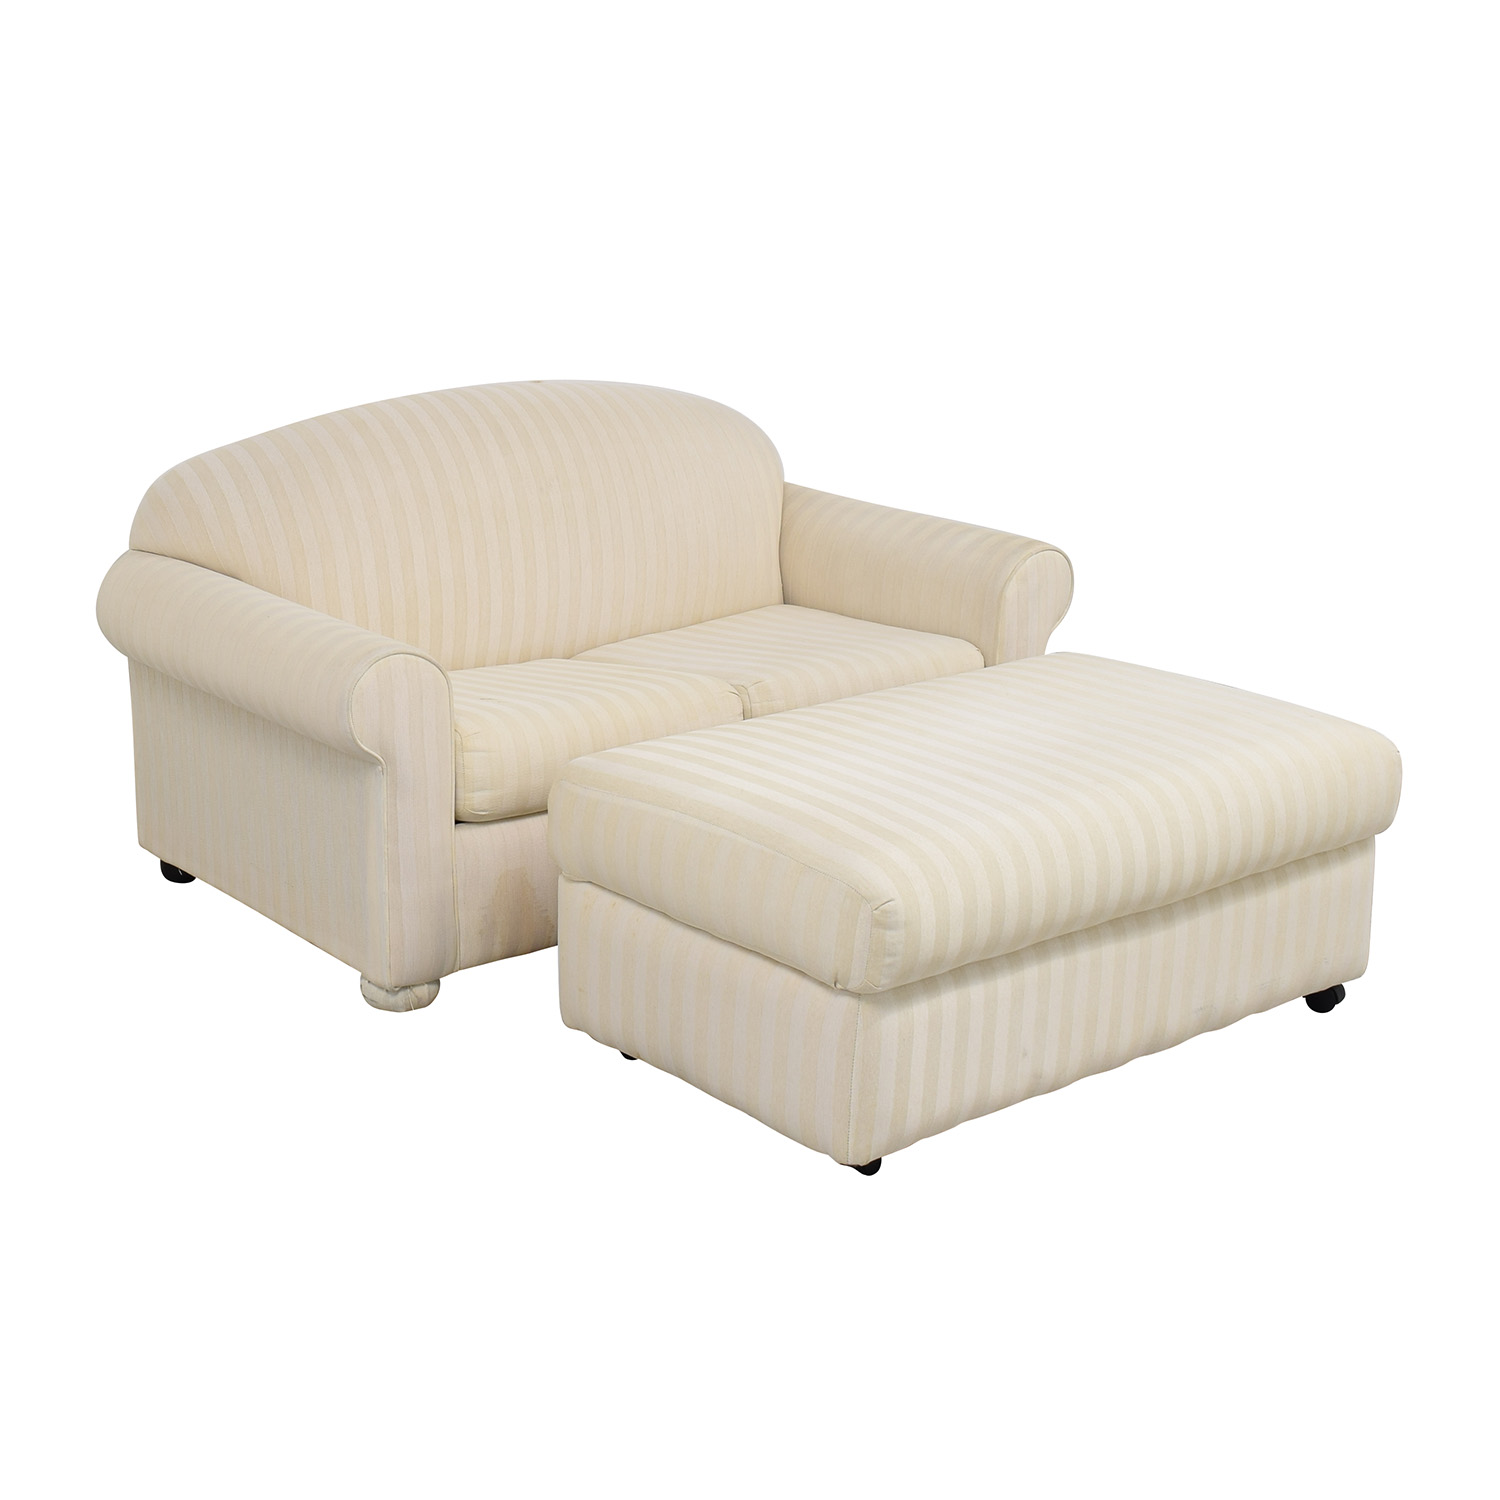 - 85% OFF - La-Z-Boy La-Z-Boy Sofa Sleeper With Ottoman / Sofas